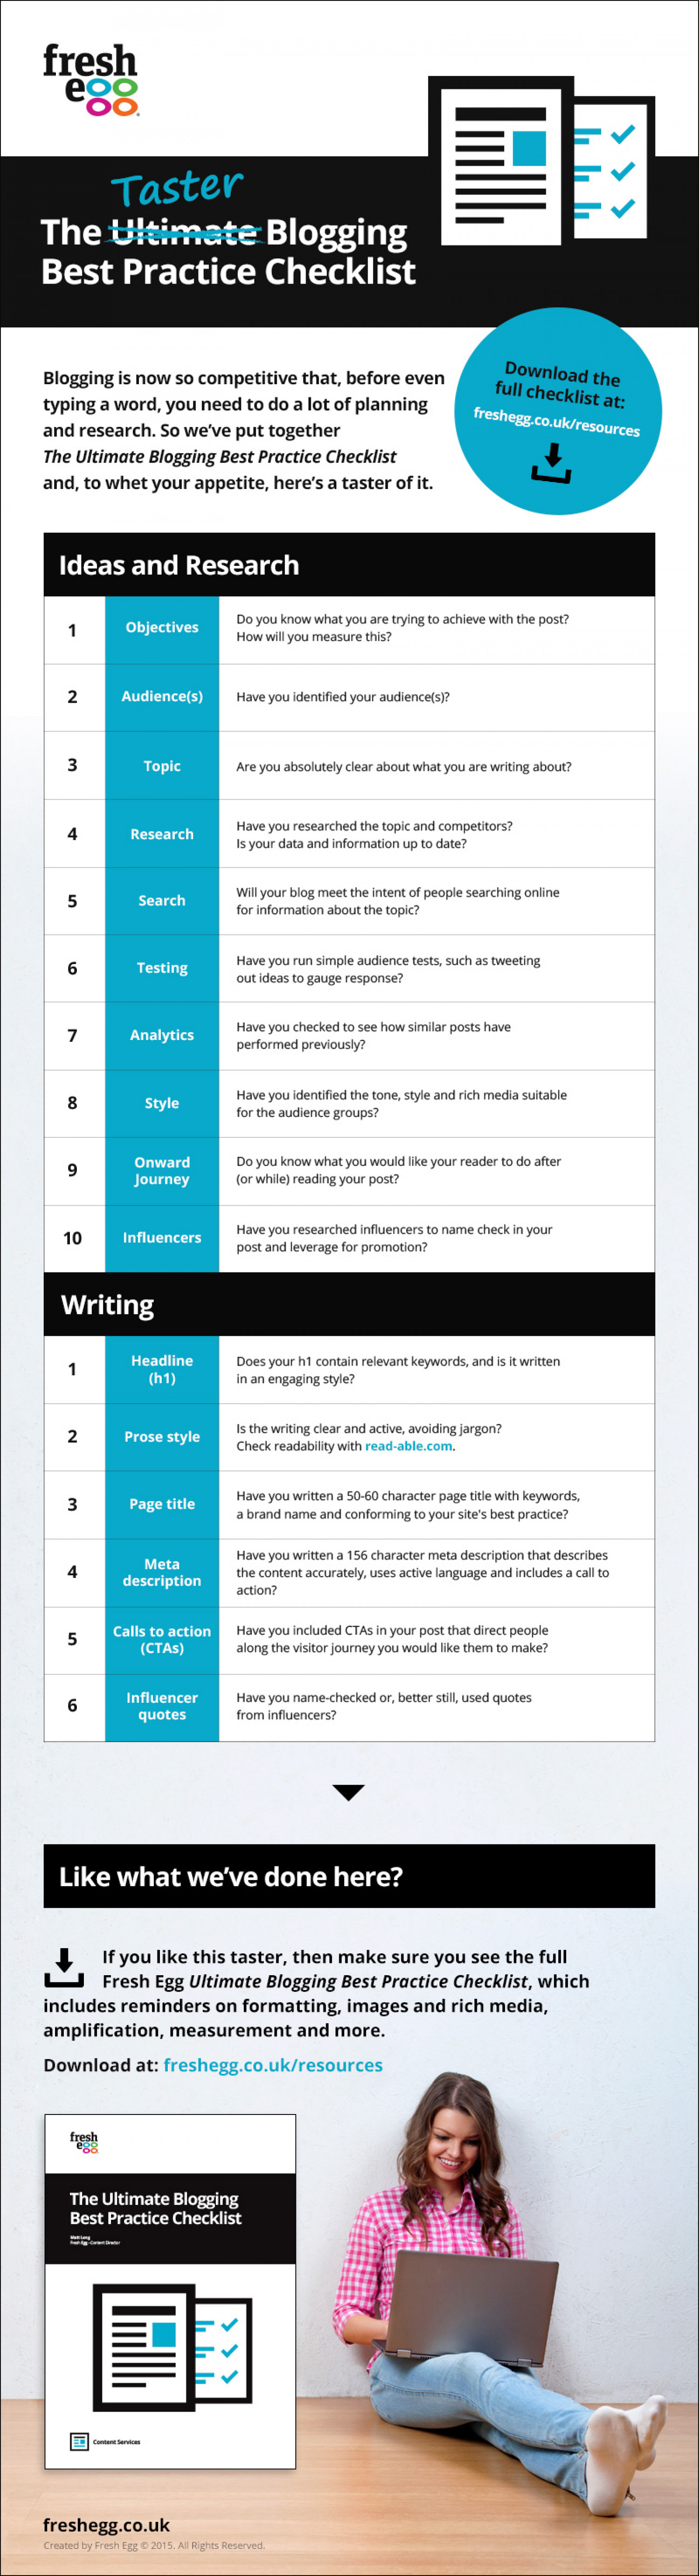 Blogging Best Practice Checklist Infographic